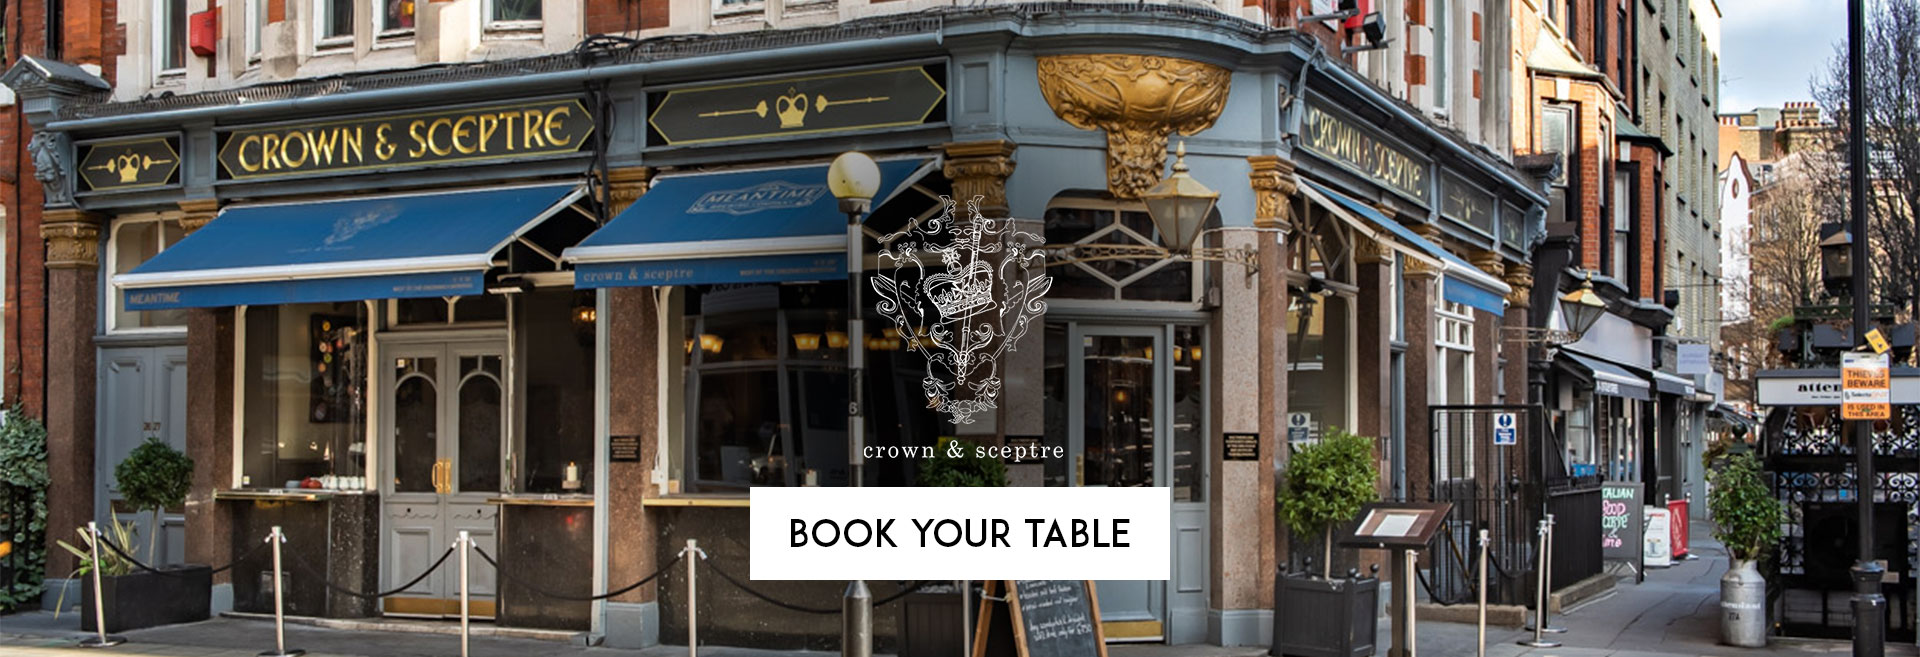 Book Your Table The Crown & Sceptre